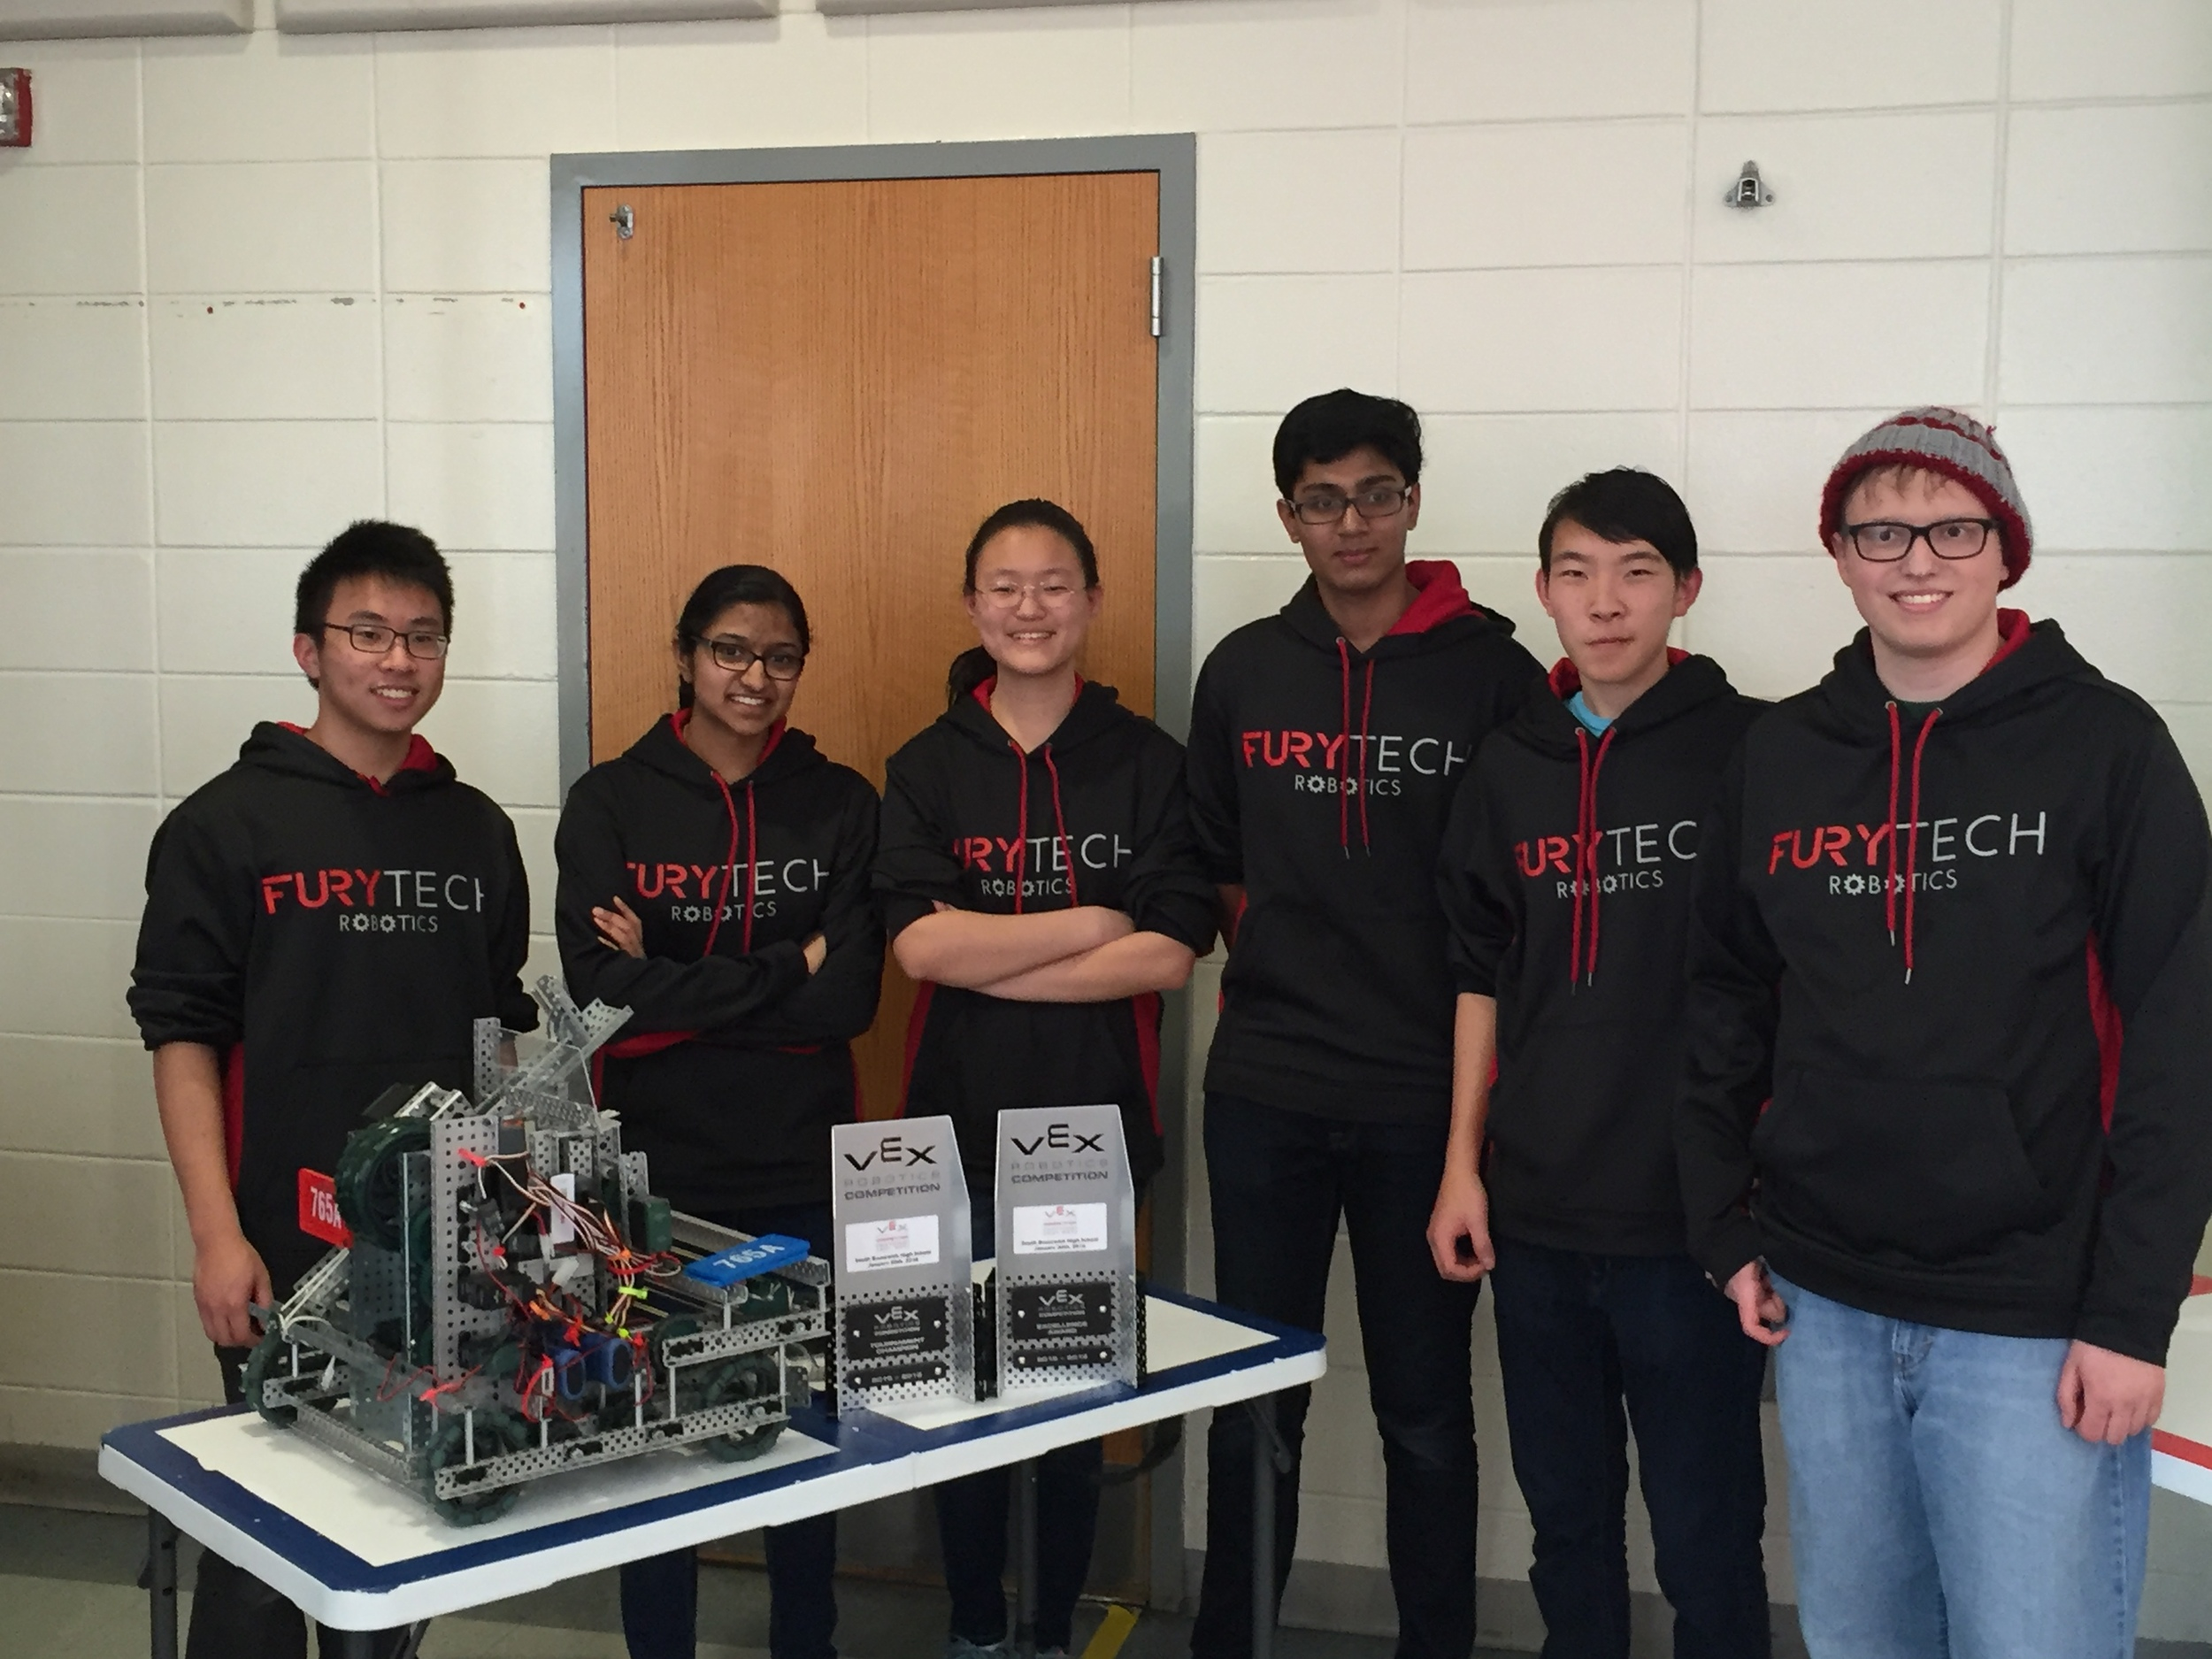 The Vex Robotics Team members from left to right are: Ray Tsa, Anjali Nambrath, Emily Liu, Arvind Yalavarti, Alex Yao, and Matt Ramina.